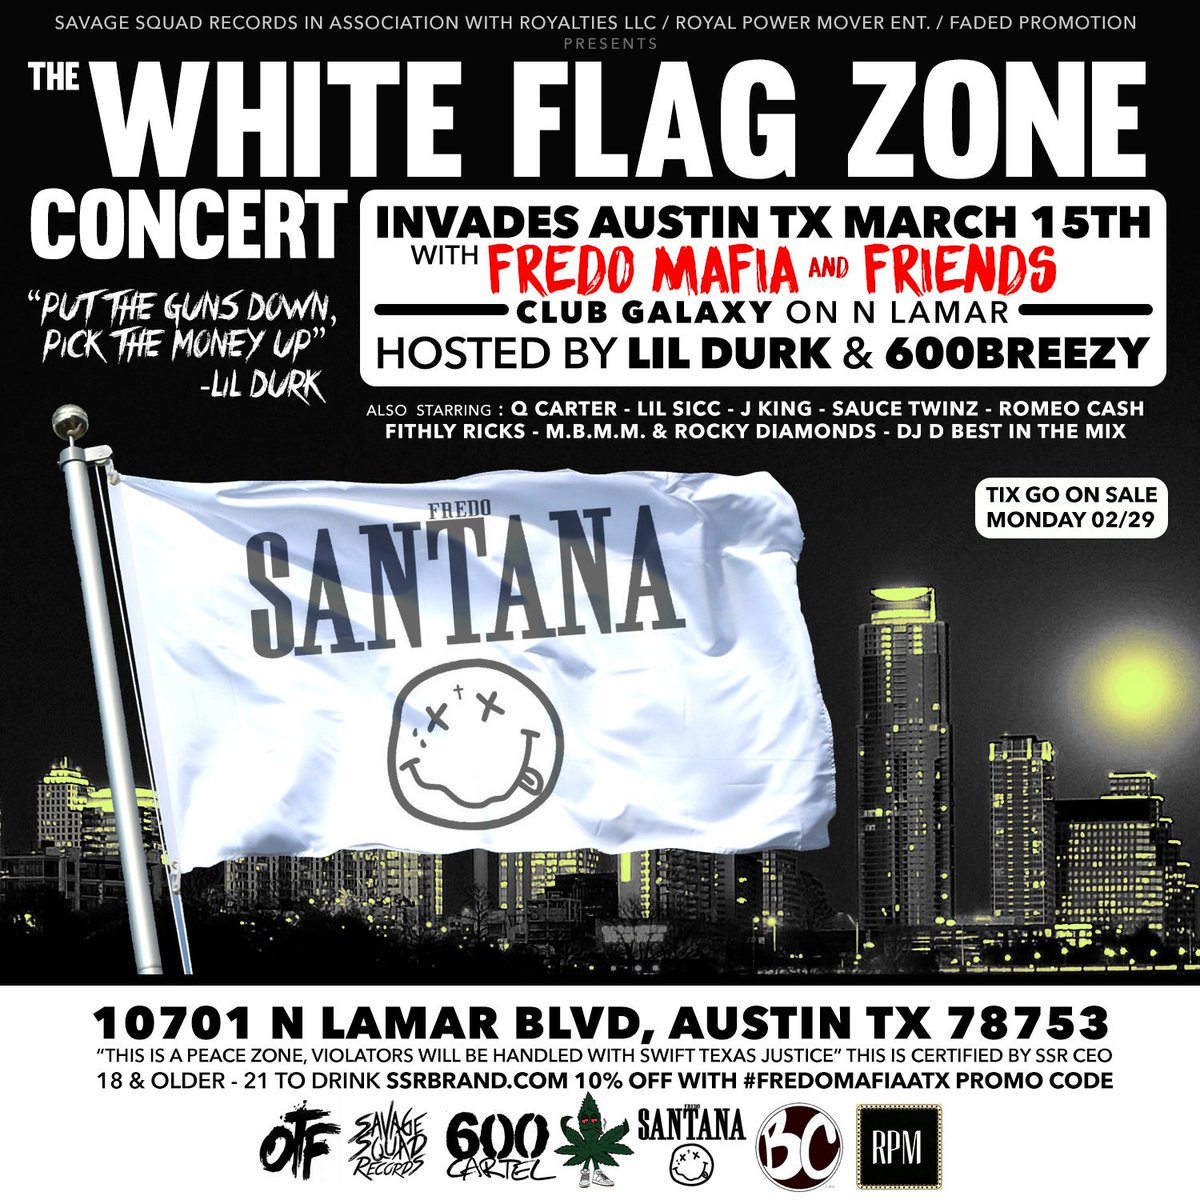 03/15  @FREDOSANTANA300 will Headline #SXSW KICK OFF WHITE FLAG ZONE CONCERT HOSTED BY @600Breezy & @lildurk_  atx!! https://t.co/KQtGLQhkNO